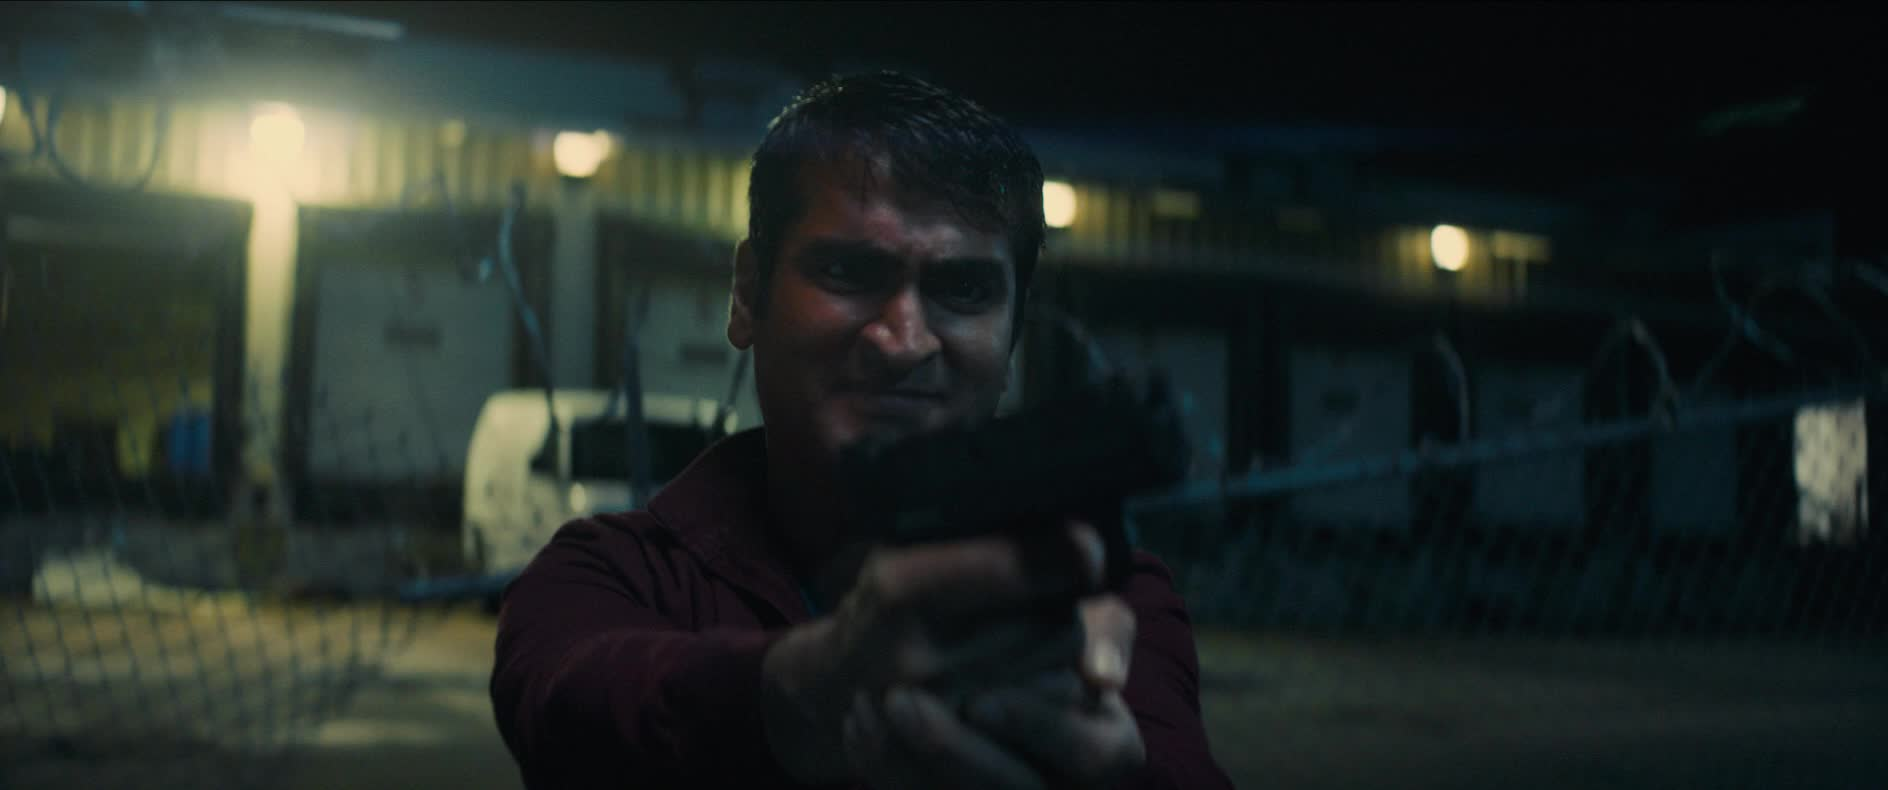 dave bautista, fight, fighting, gun, kumail nanjiani, stuber, stuber movie, Broken Gun Knock Out GIFs